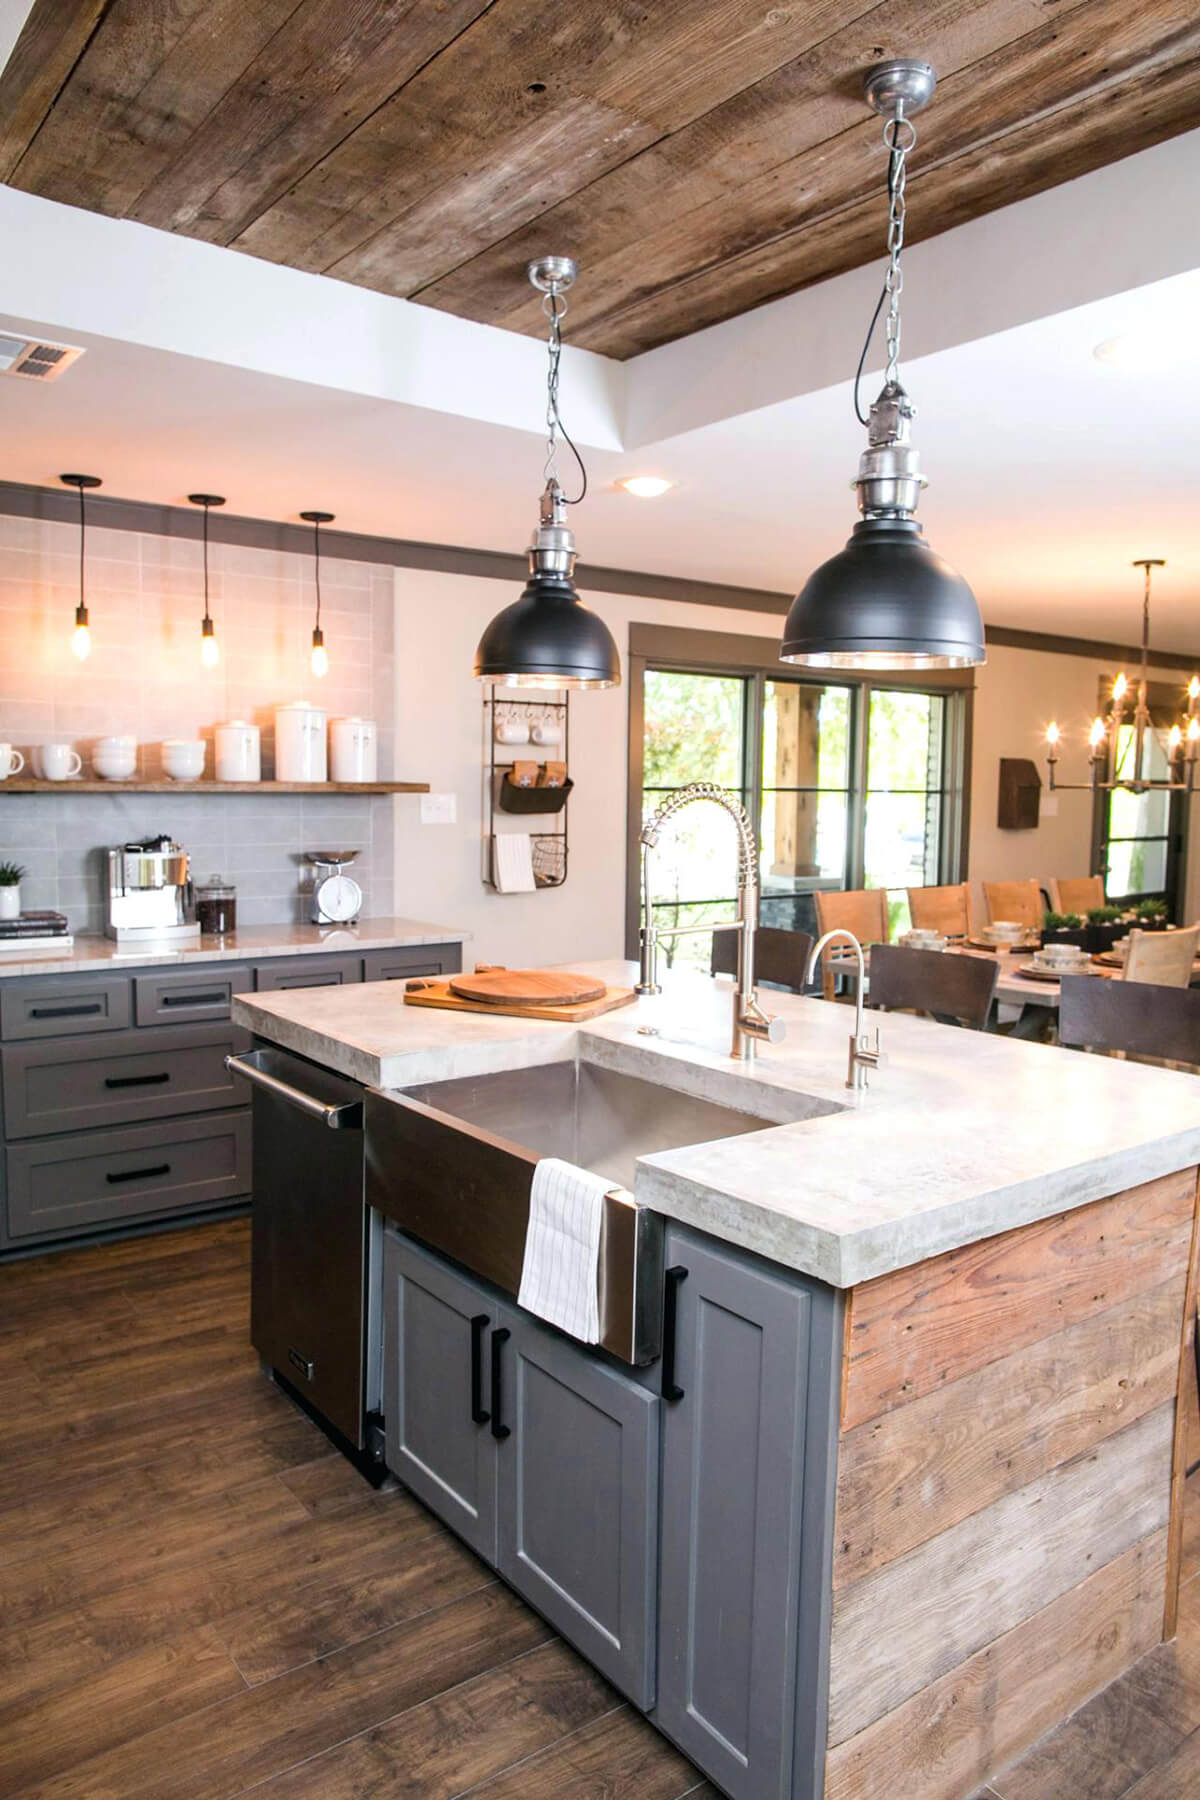 35 Best Farmhouse Kitchen Cabinet Ideas and Designs for 2020 on Farmhouse Countertops  id=30817